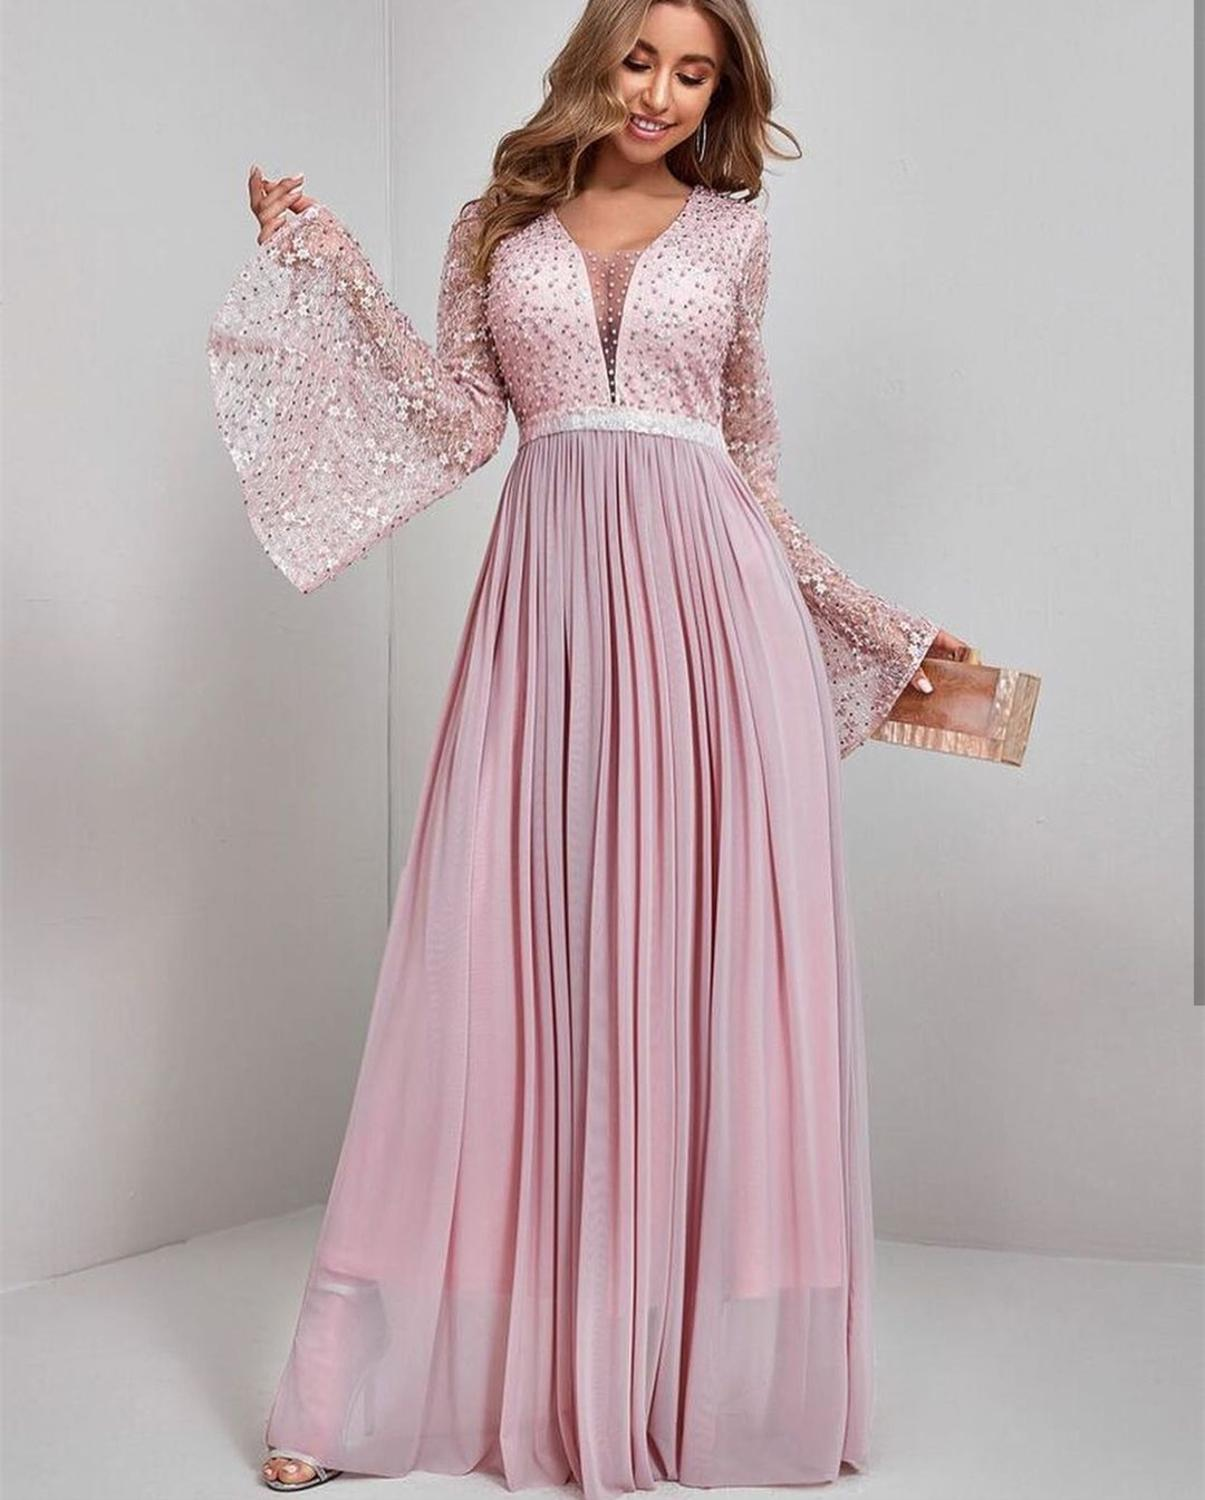 Elegant Prom Dress 2021 Luxury  Pink Shinny Long Sleeve Sexy Deep V-neck  Floor length Pearls Batwing Special Occasion Dresses